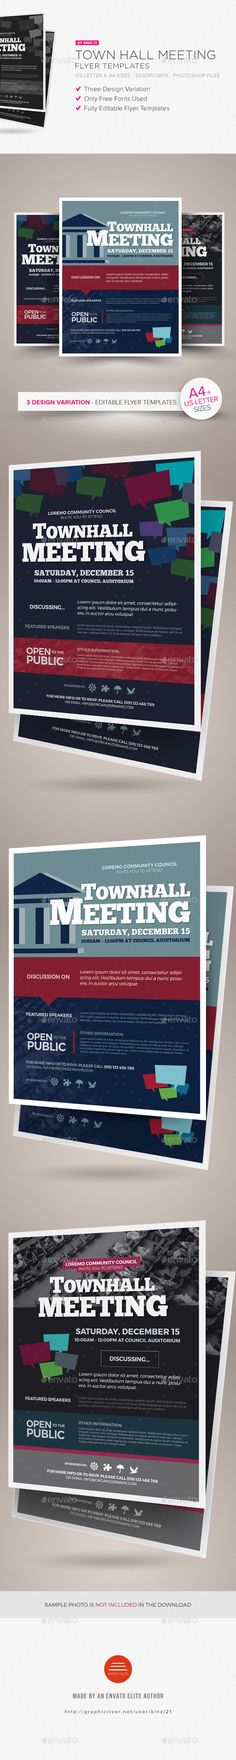 Town Hall Meeting Flyer Templates — Photoshop PSD #meet-up #magazine • Available here → https://graphicriver.net/item/town-hall-meeting-flyer-templates/19177252?ref=pxcr